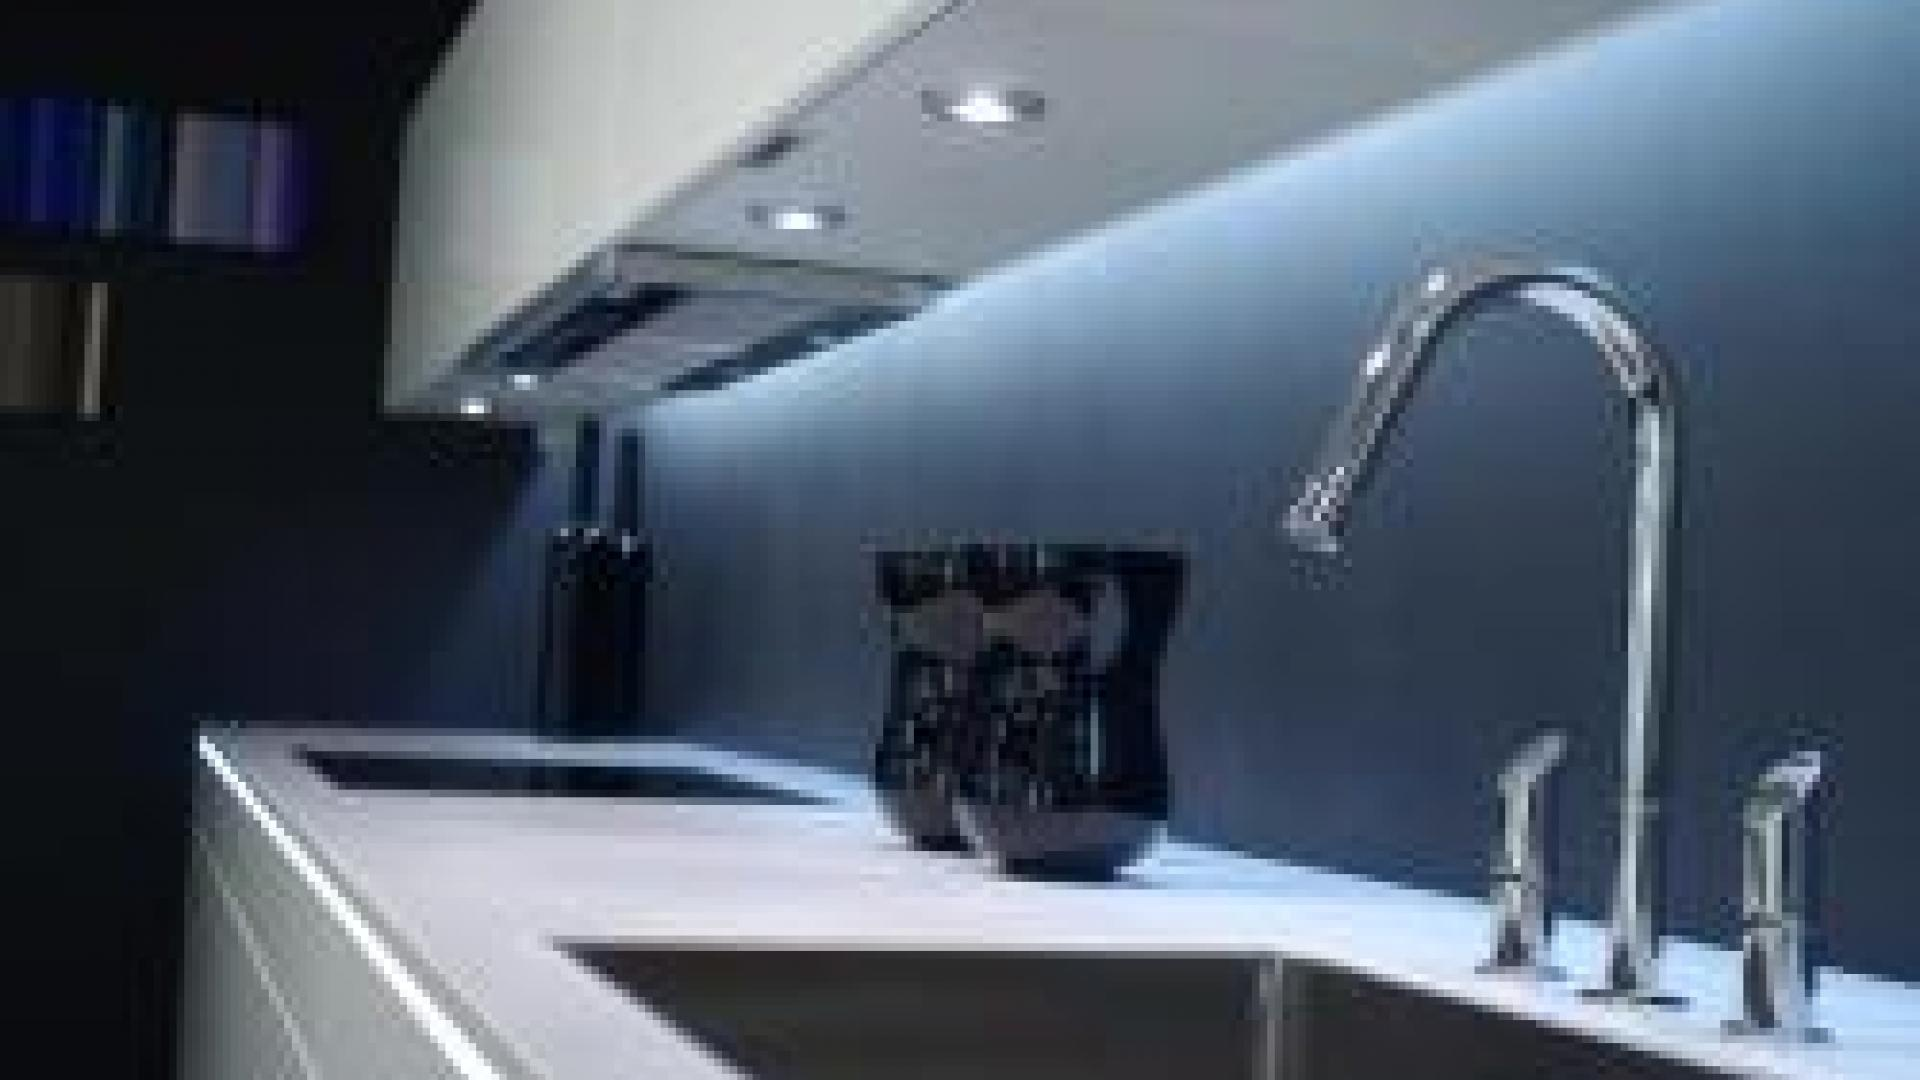 Led Strip Woonkamer : Lighting for your your kitchen or living room with a led strip